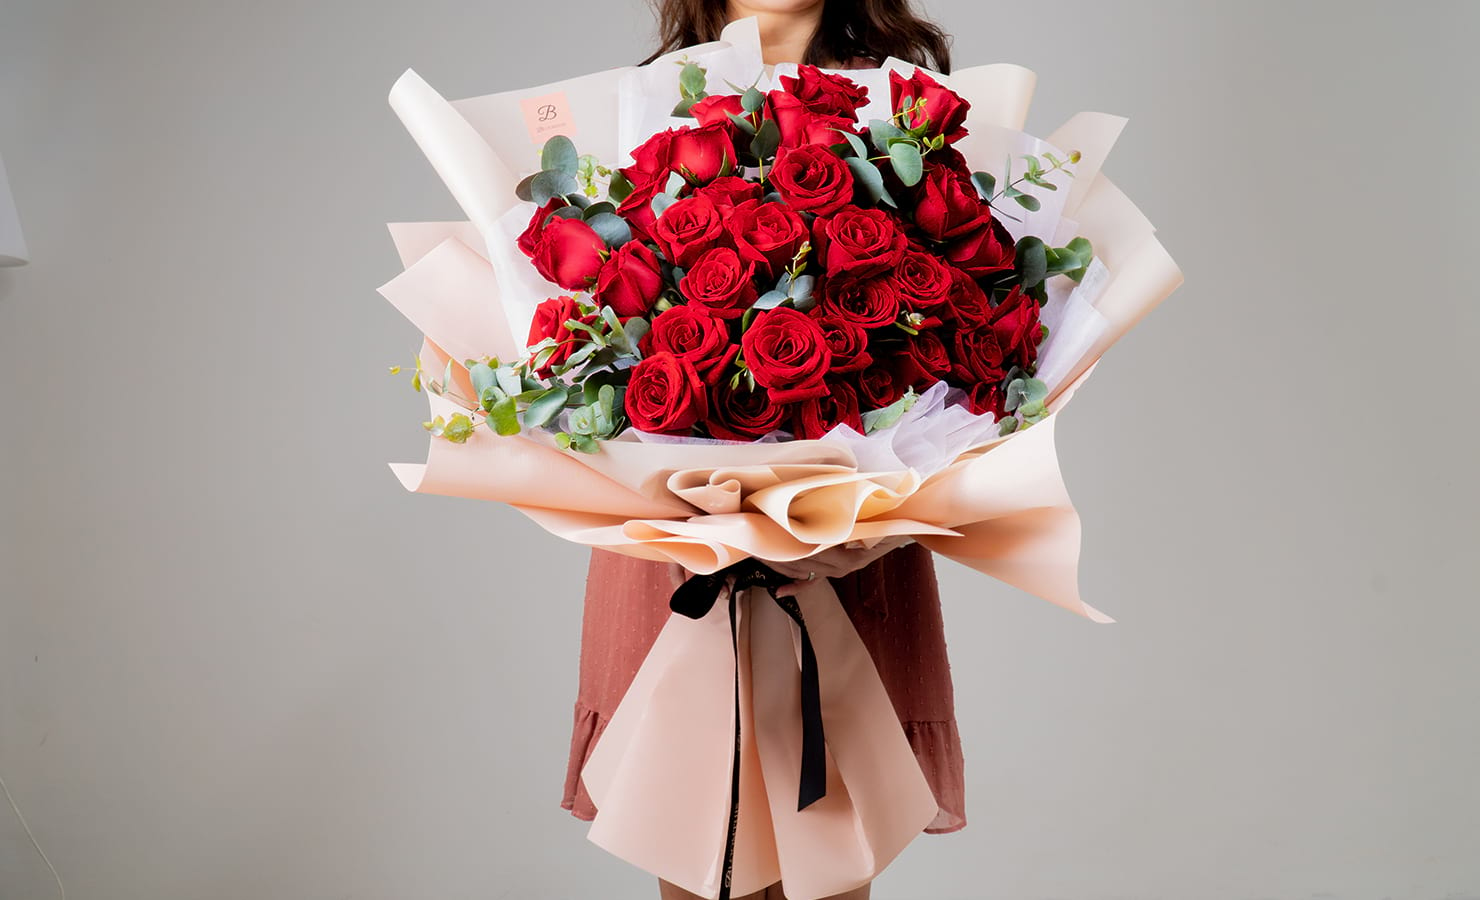 bloomthis-qixi-festival-gift-guide-2021-03-ashley-red-rose-bouquet